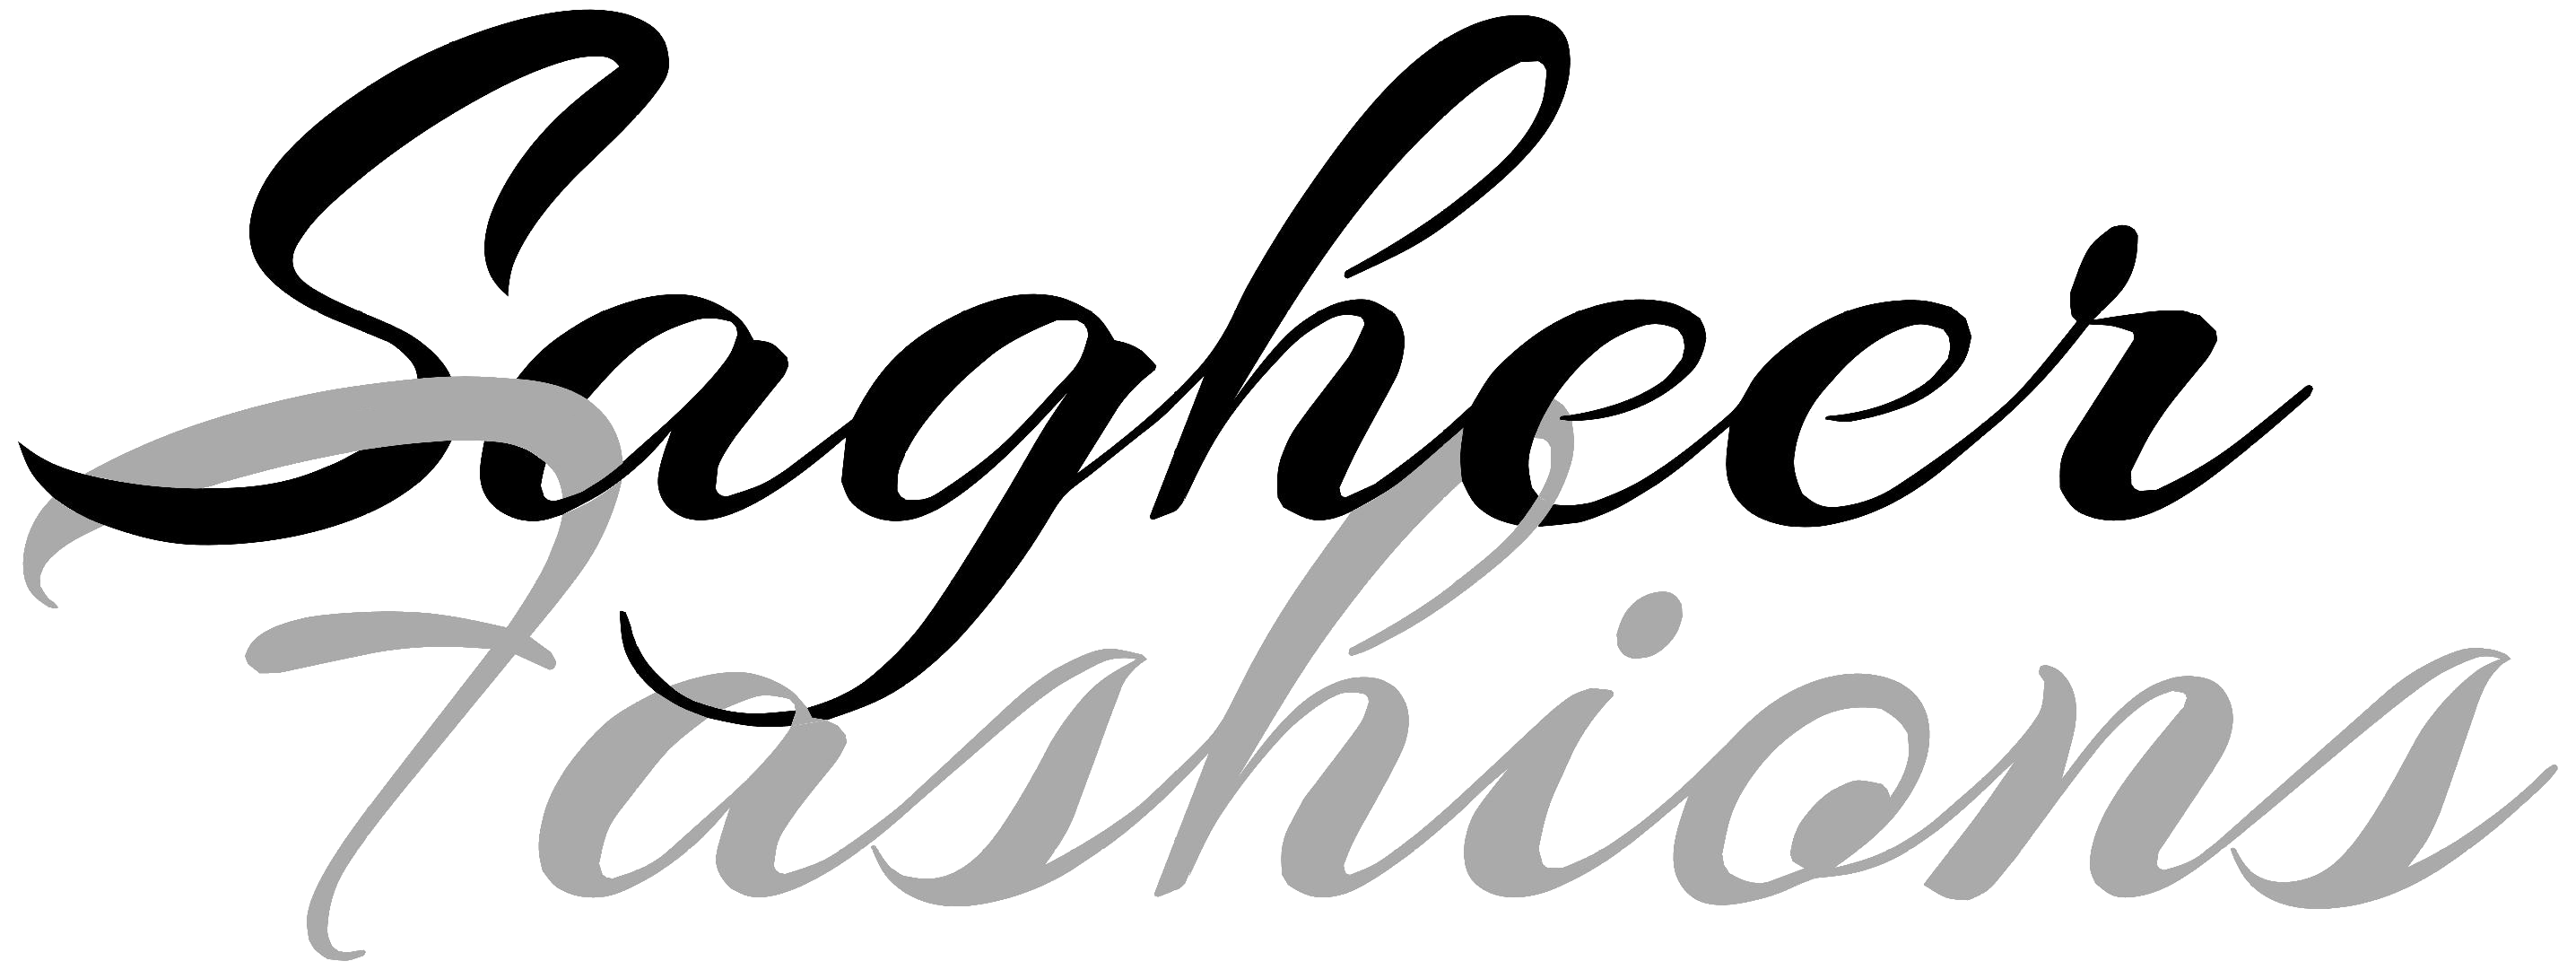 Sagheer Fashions Logo Big